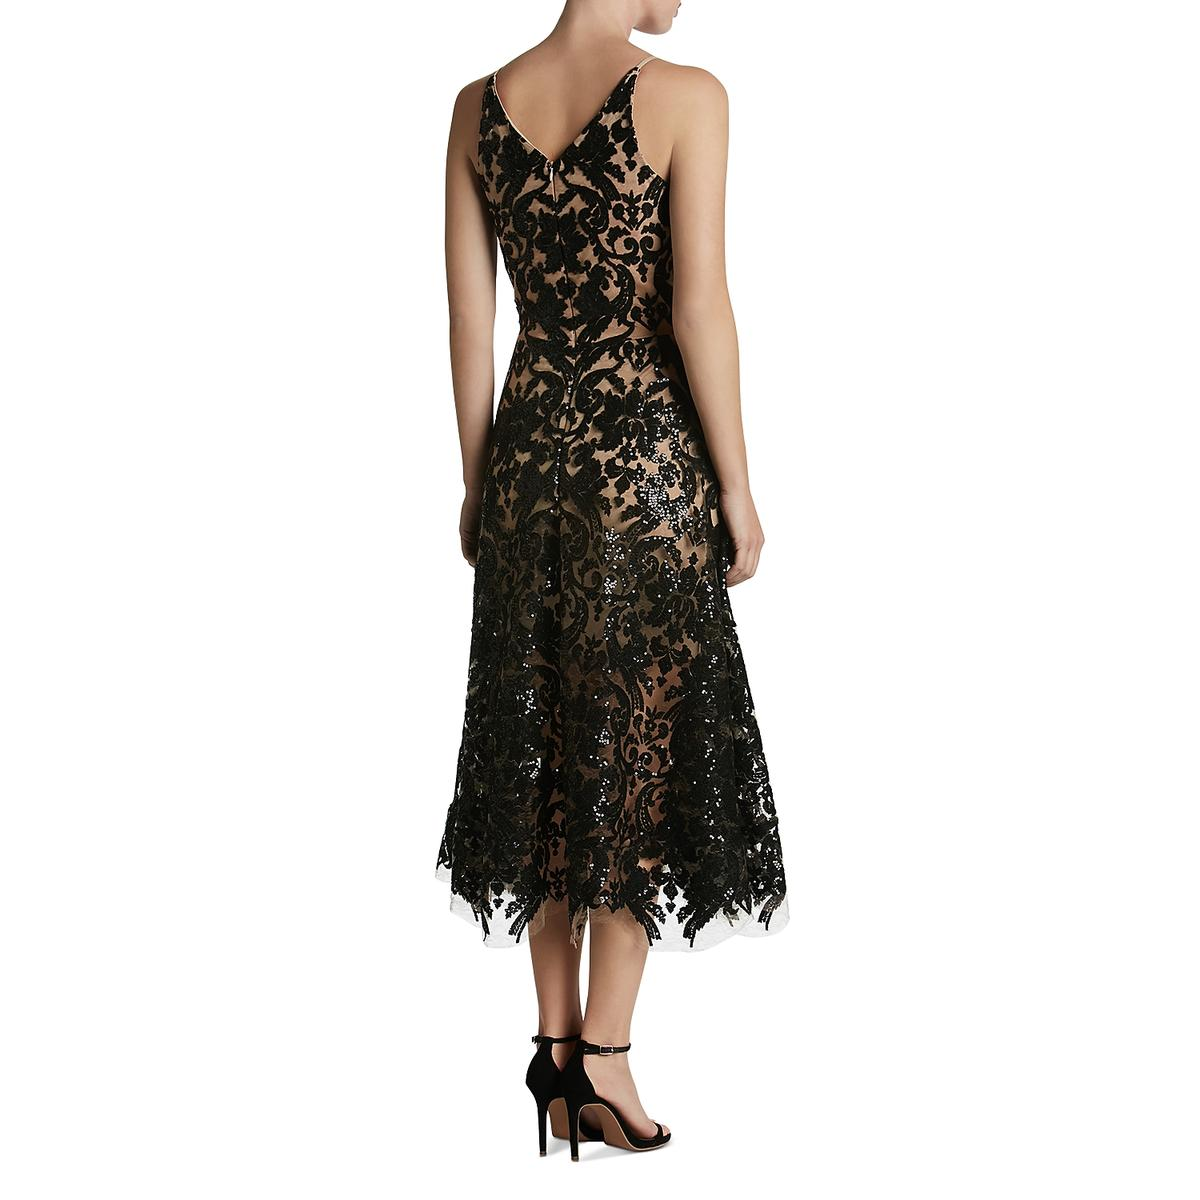 Betsy & Adam Womens Black Lace Evening Dress Gown Petites